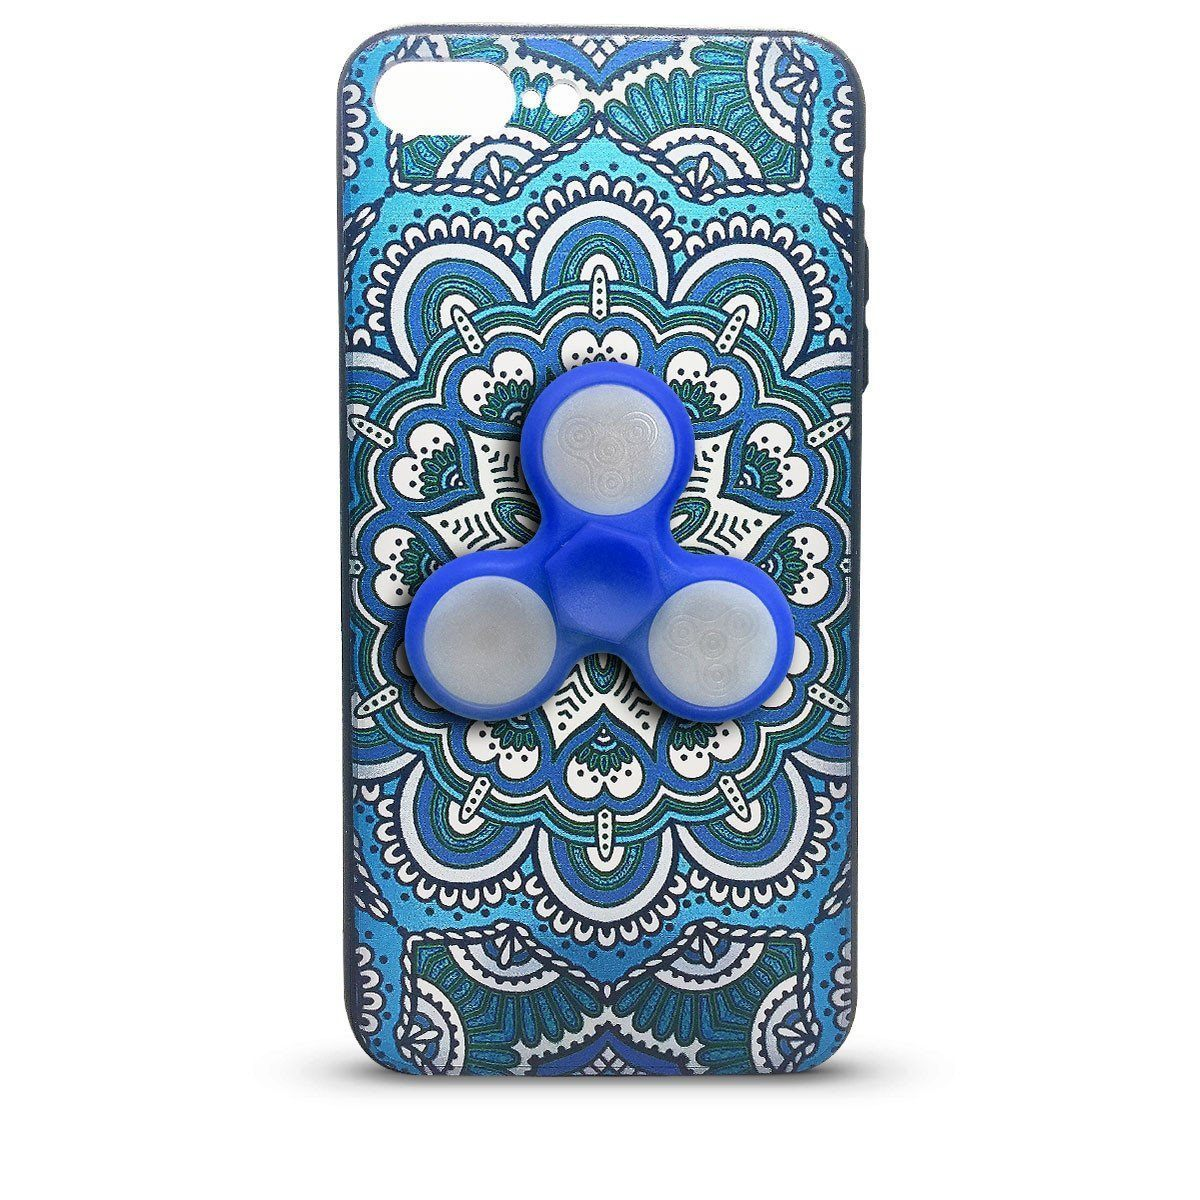 Fidget Case for iPhone 6P - Blue